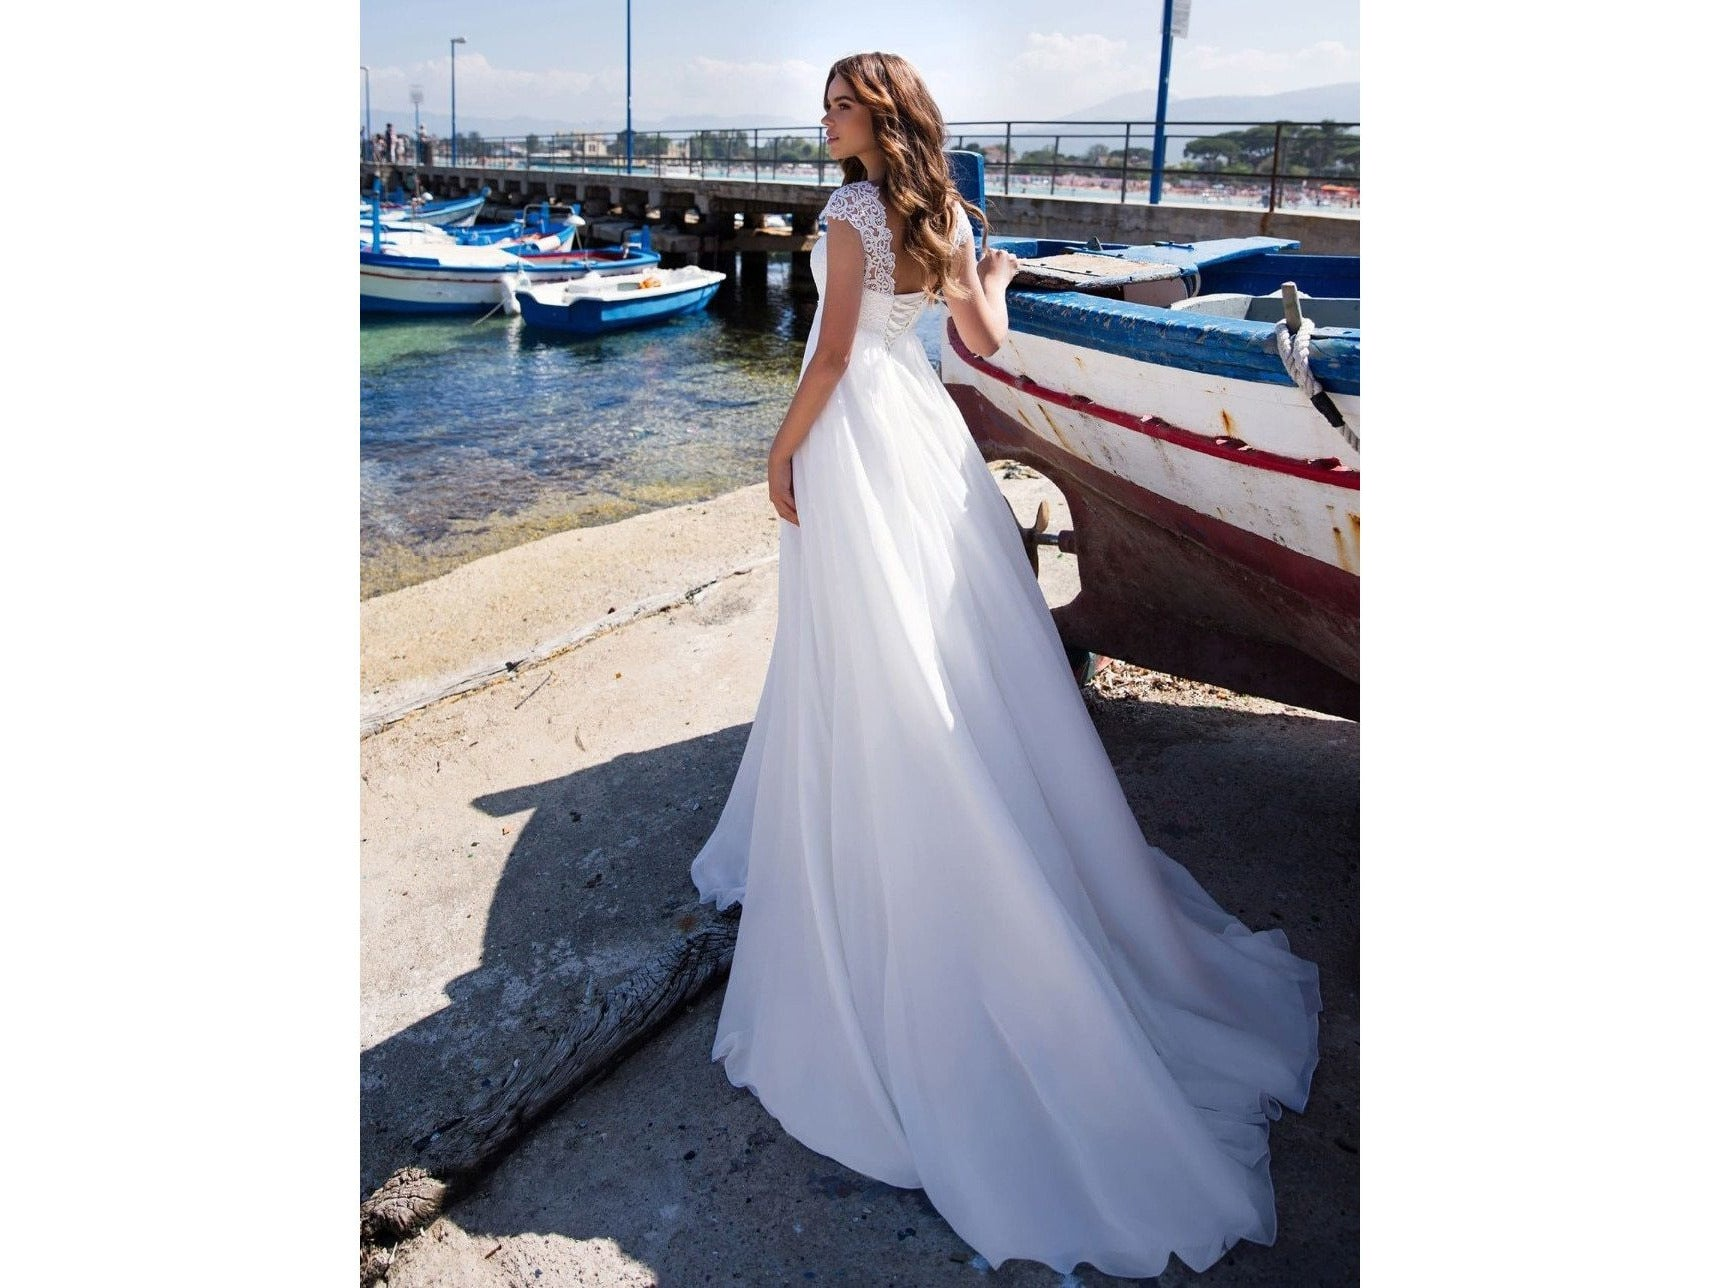 Simple Jewel Cap Sleeves Empire Waist Wedding Gown Chiffon Bridal Dress Maternity